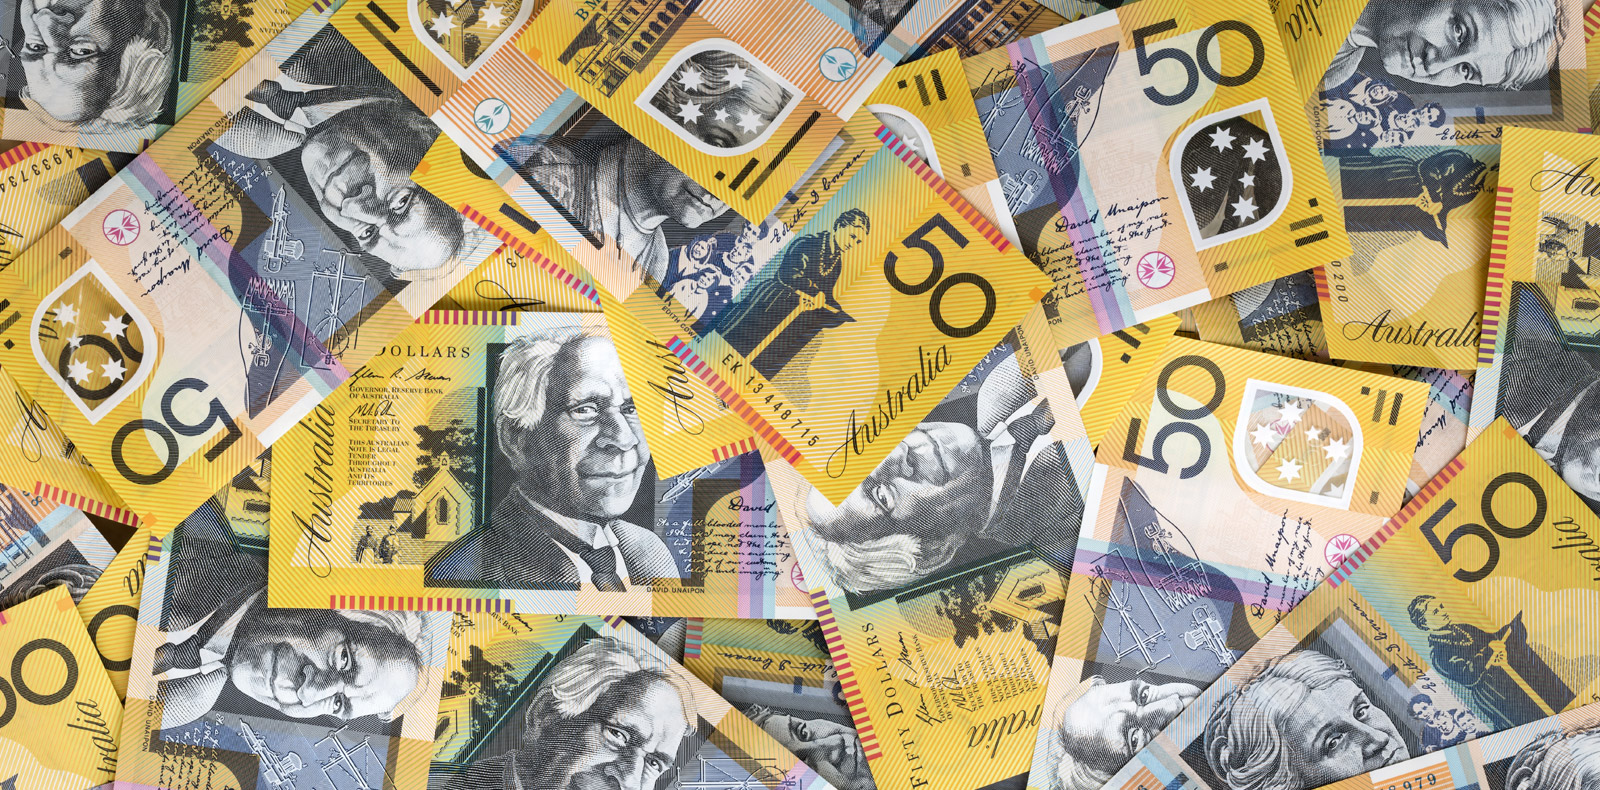 Reserve Bank of Australia meeting minutes highlight AUD picture.